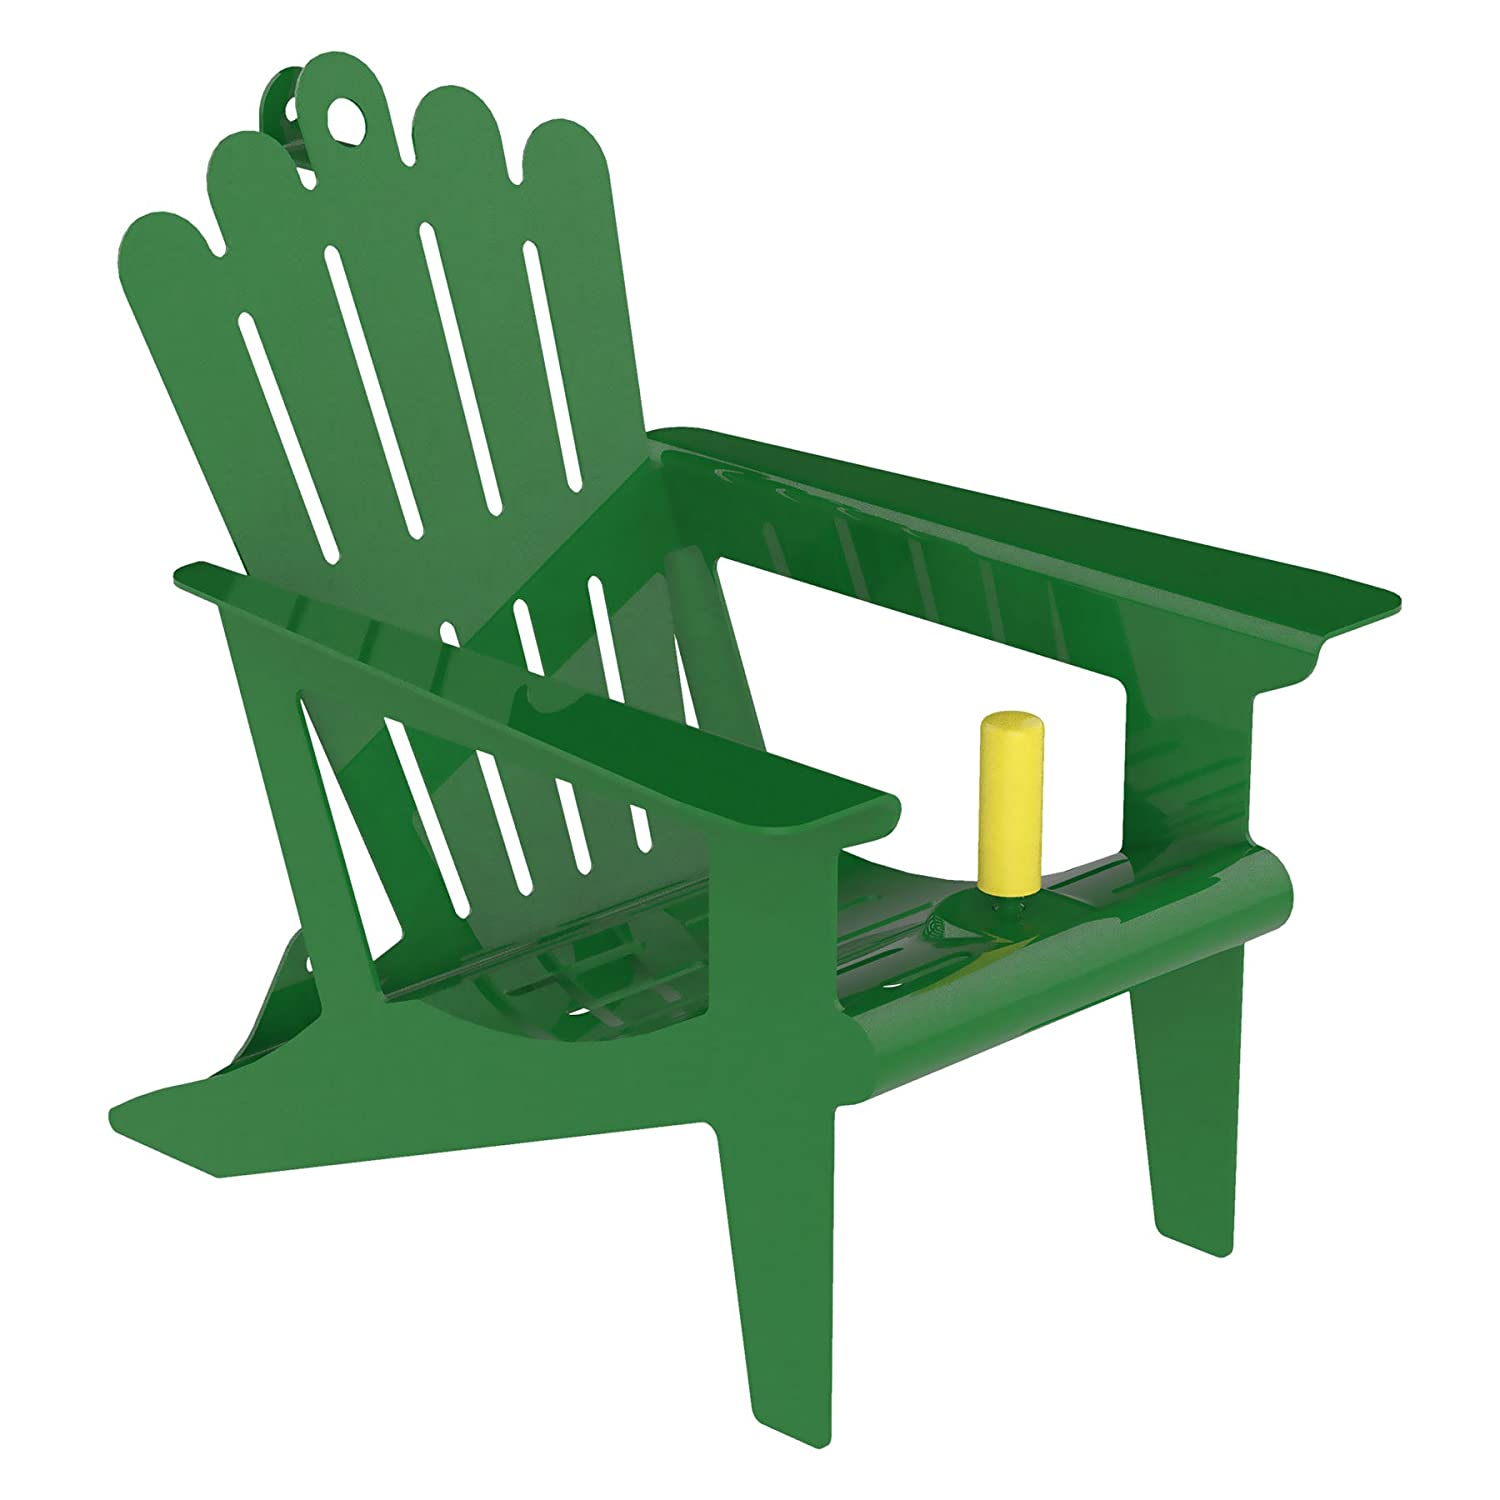 Belle Fleur Adirondack Chair Squirrel Feeder, Green, 1 Corn Cob Capacity 50116